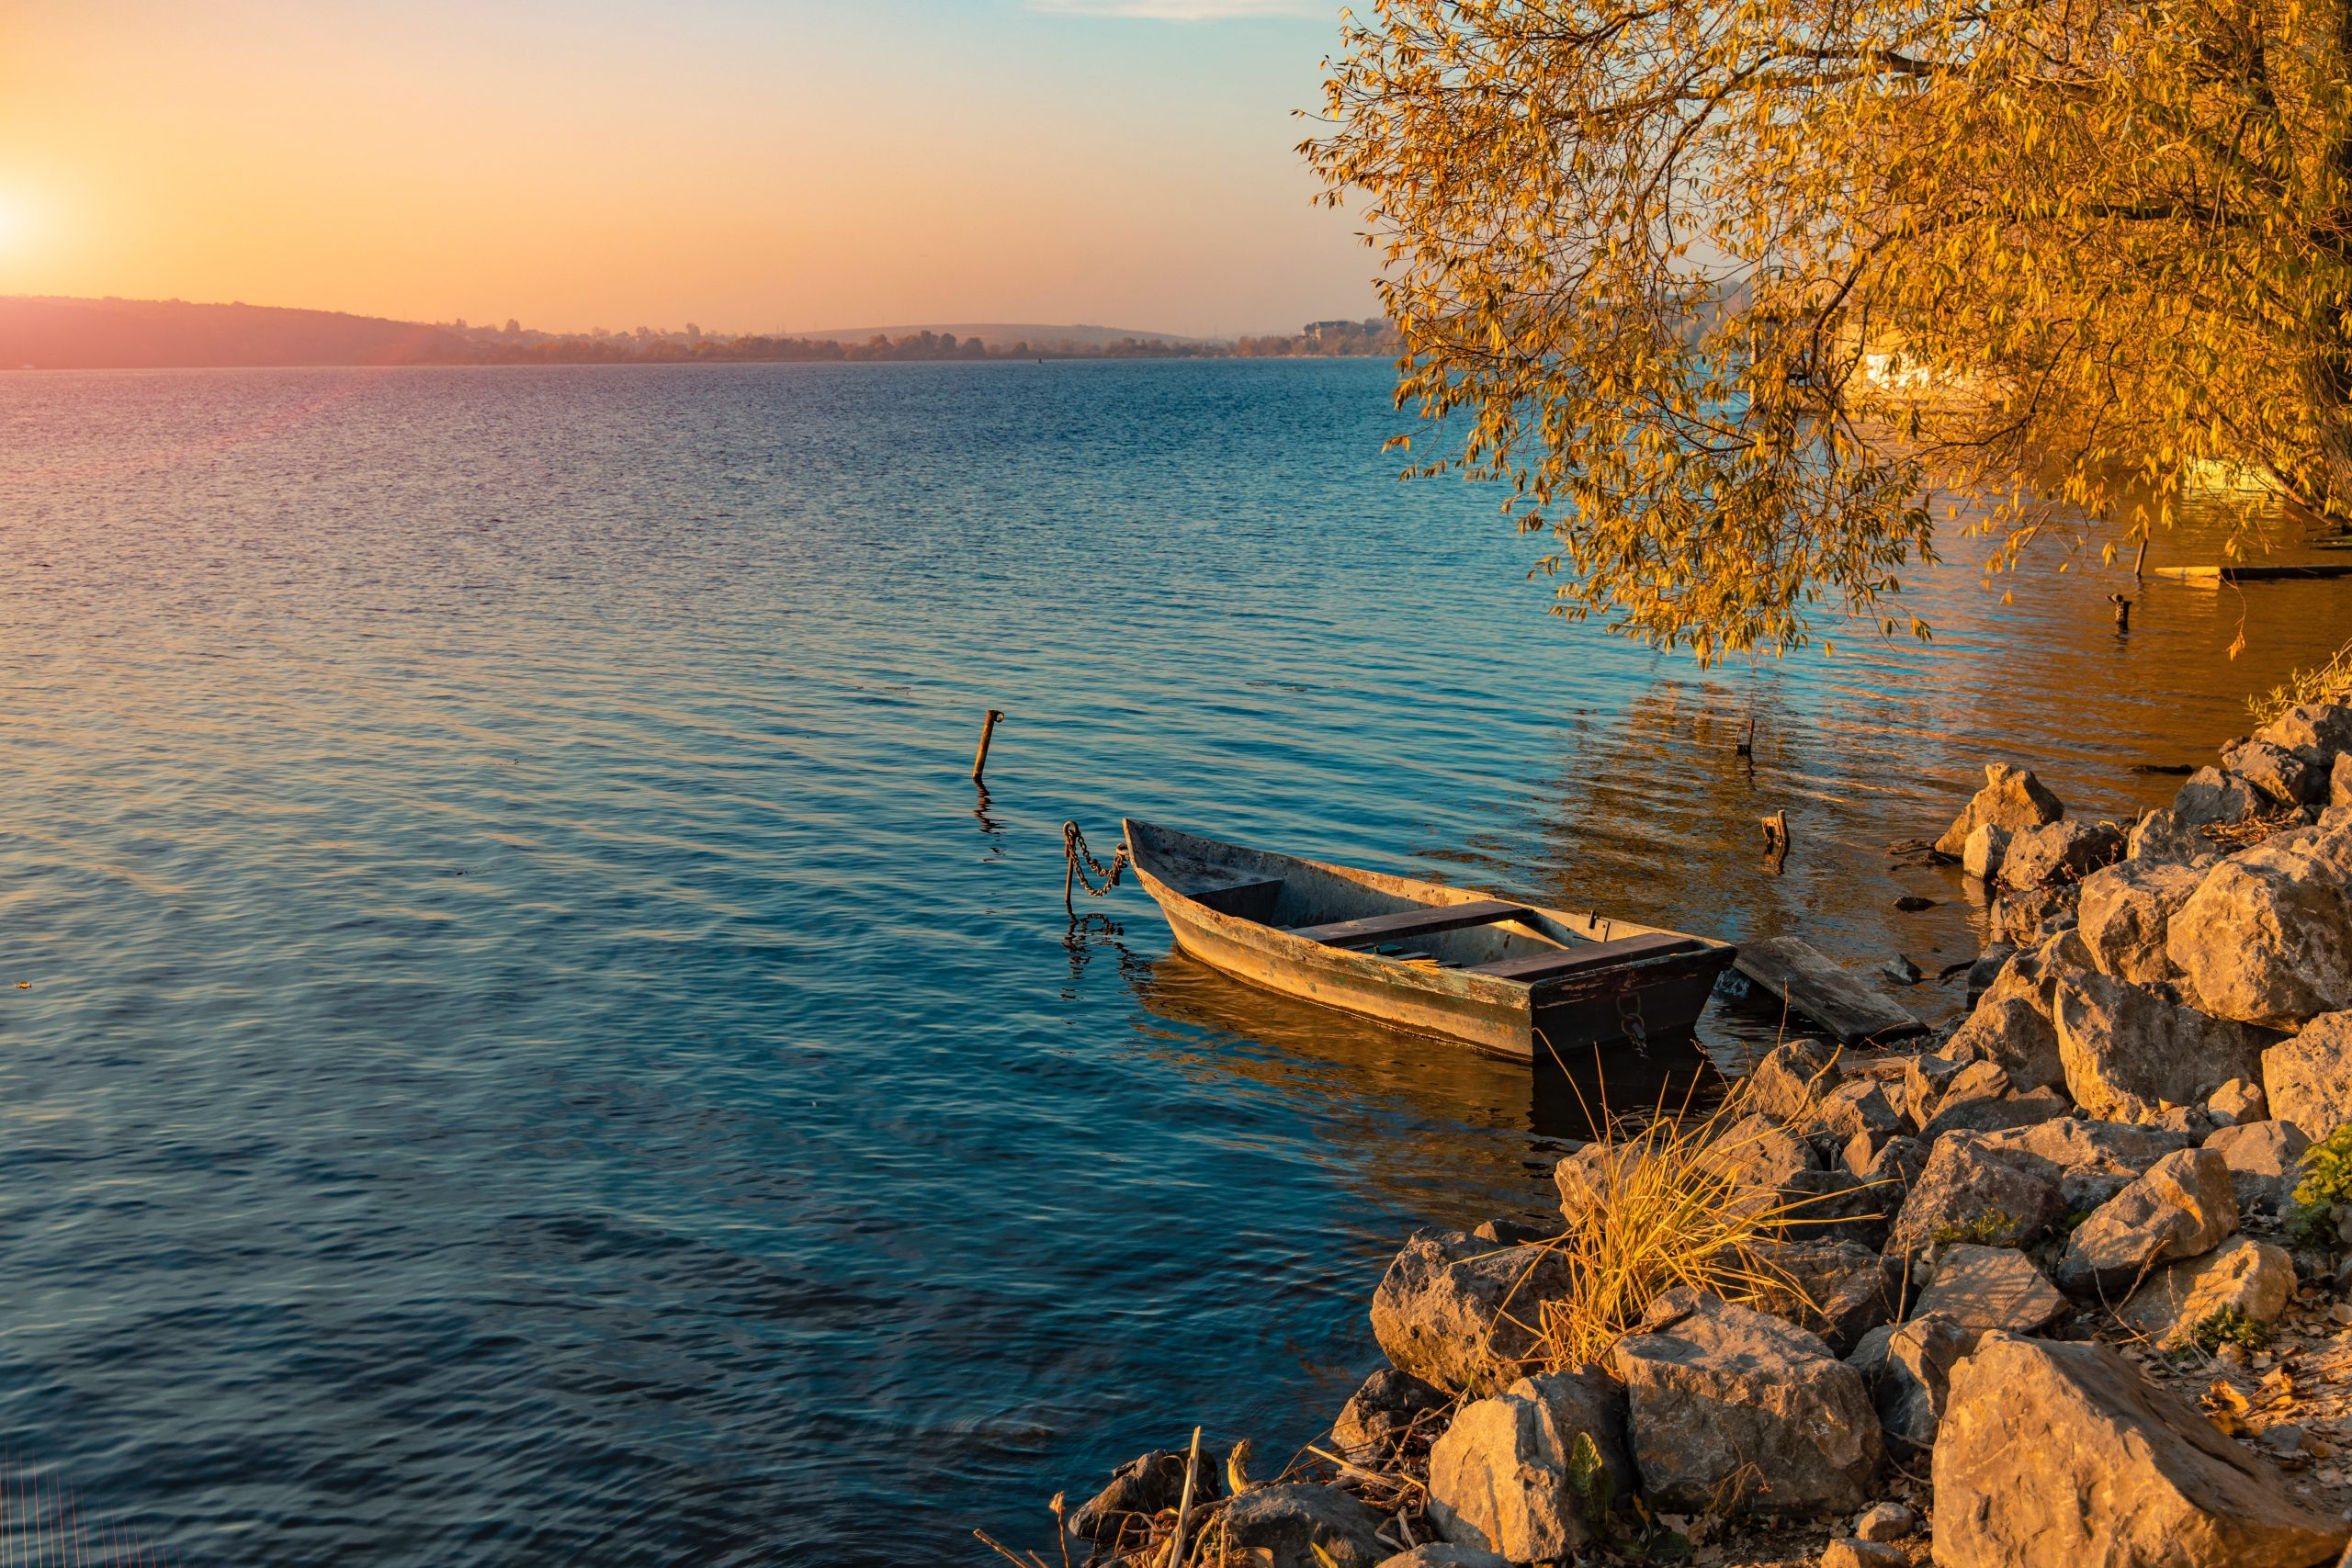 A Boat on the lake in Ternopil